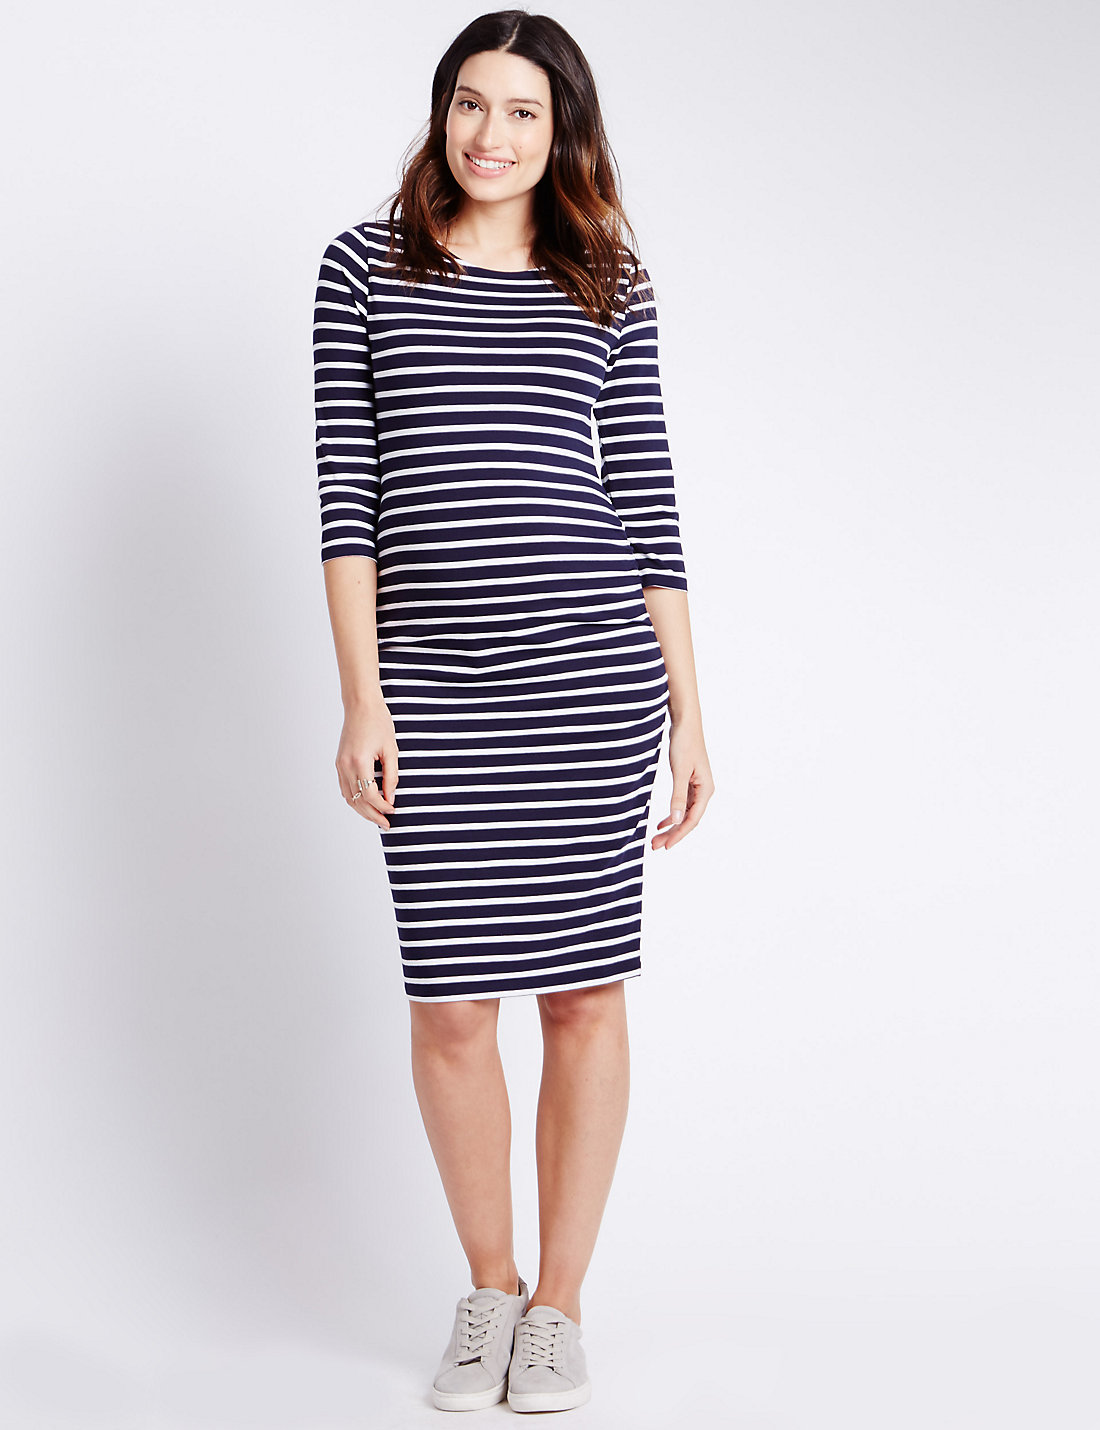 645d75c58b4 Best Maternity Dresses To Show Off Your Bump - The Lucy Edit